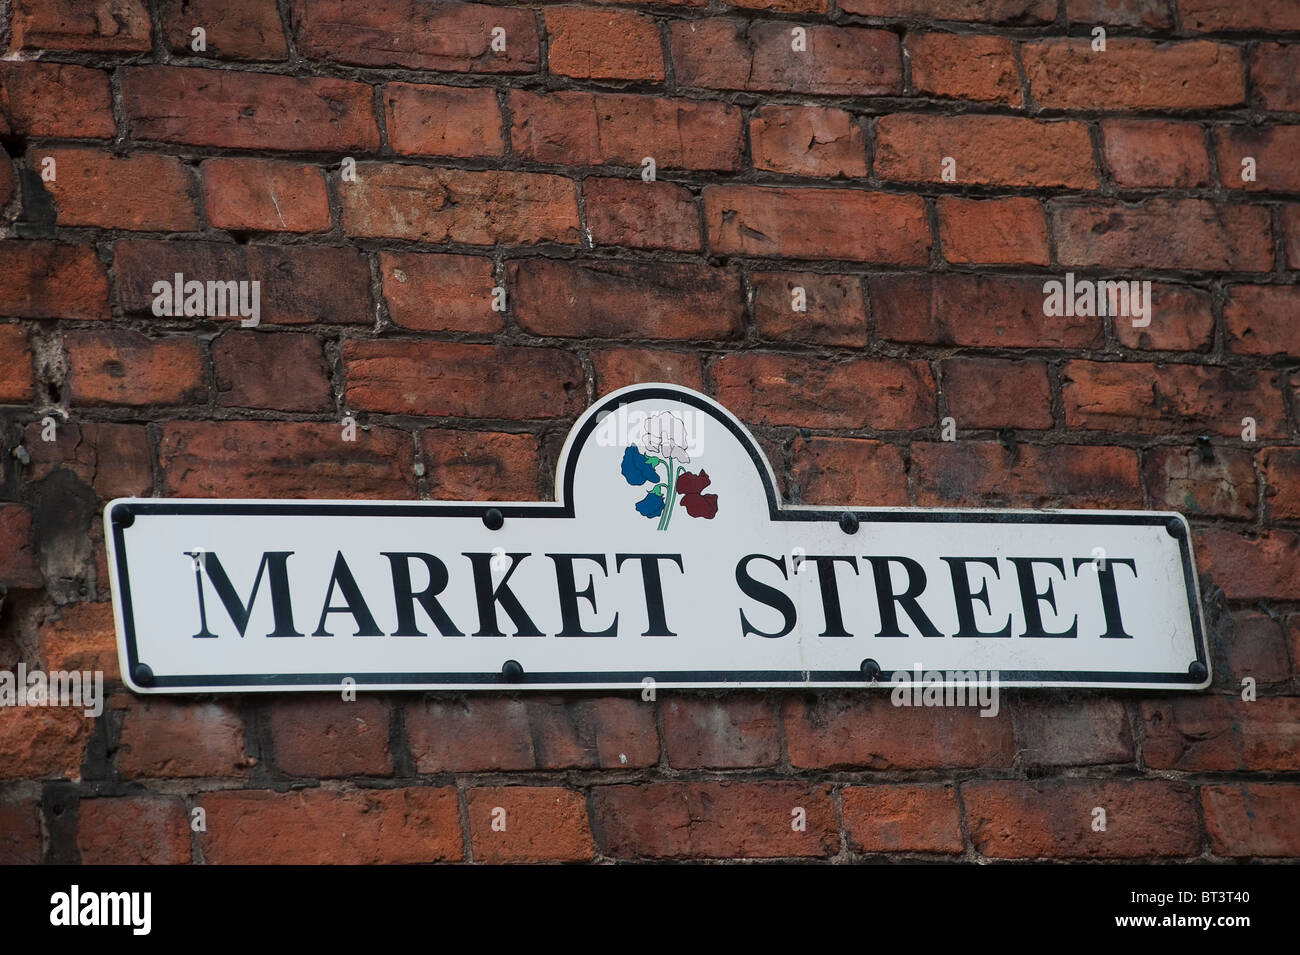 Street sign fixed to a brick wall in an English town. - Stock Image